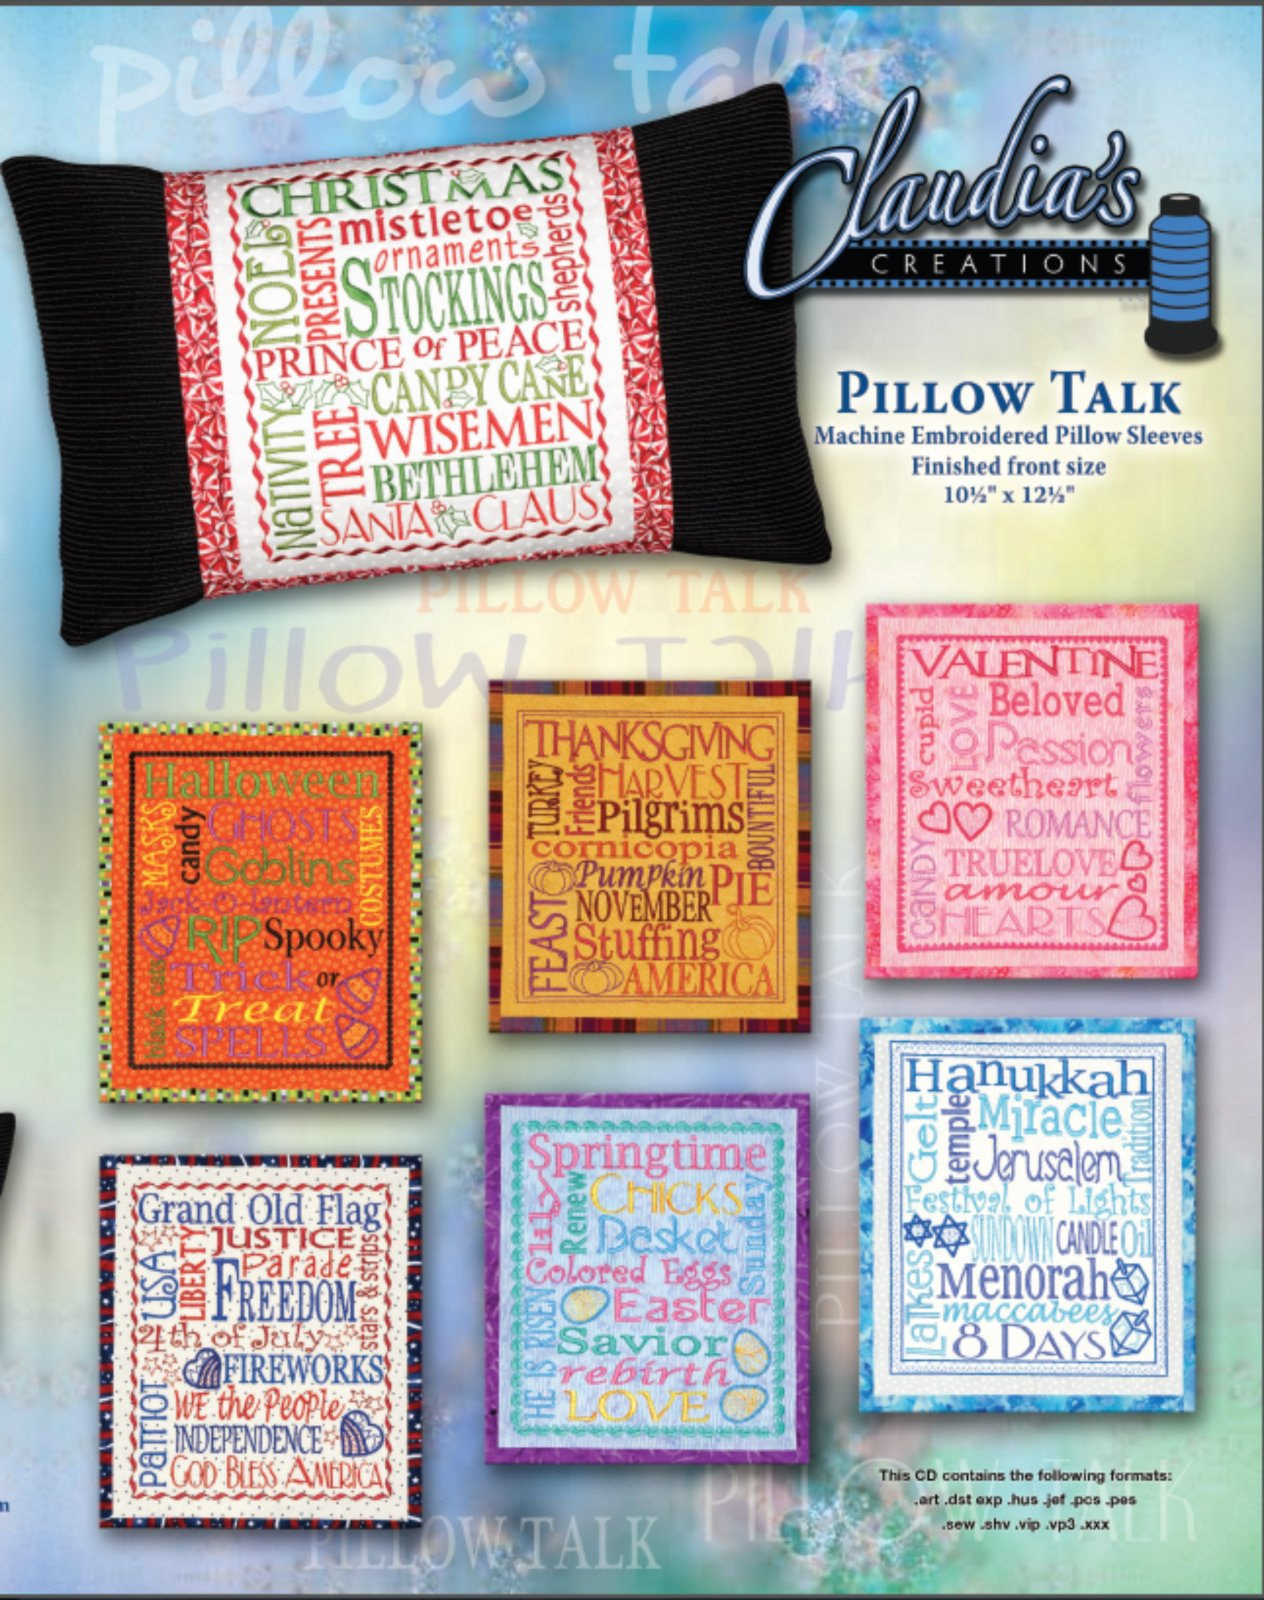 Pillow Talk by Claudia's Creations